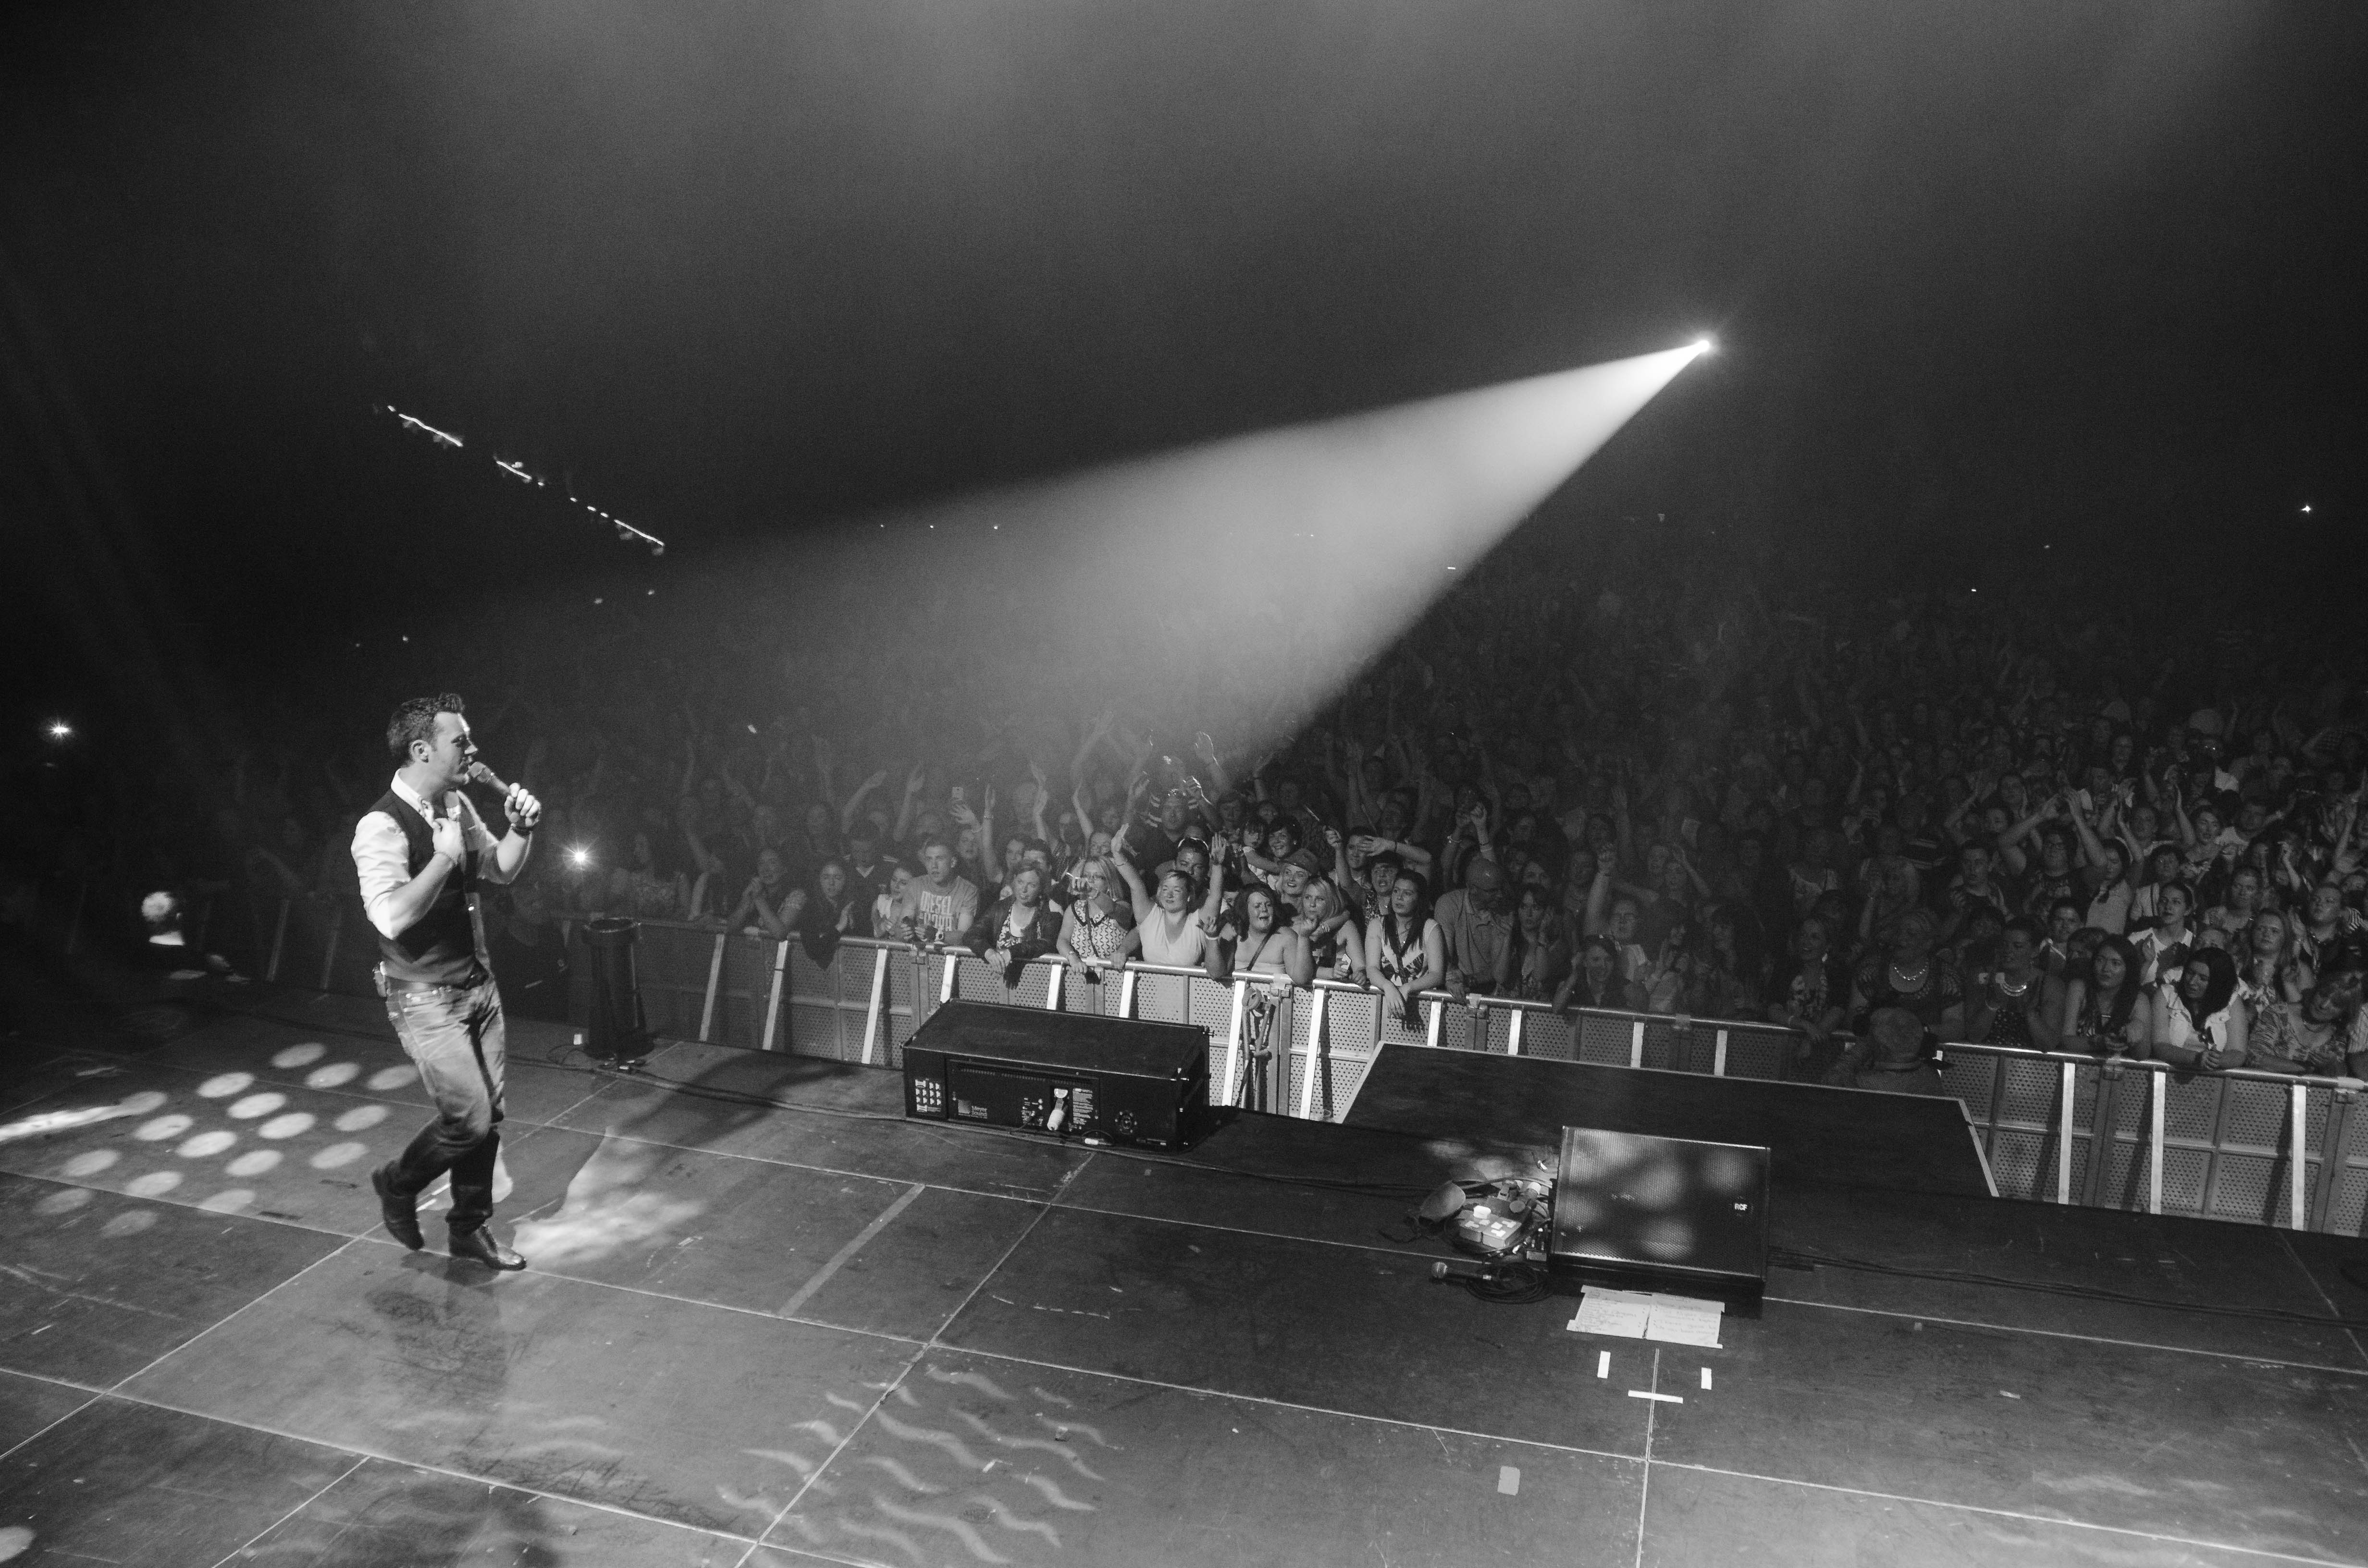 nathan-carter-at-the-marquee-cork-by-sean-smyth-15-6-14-48-of-55